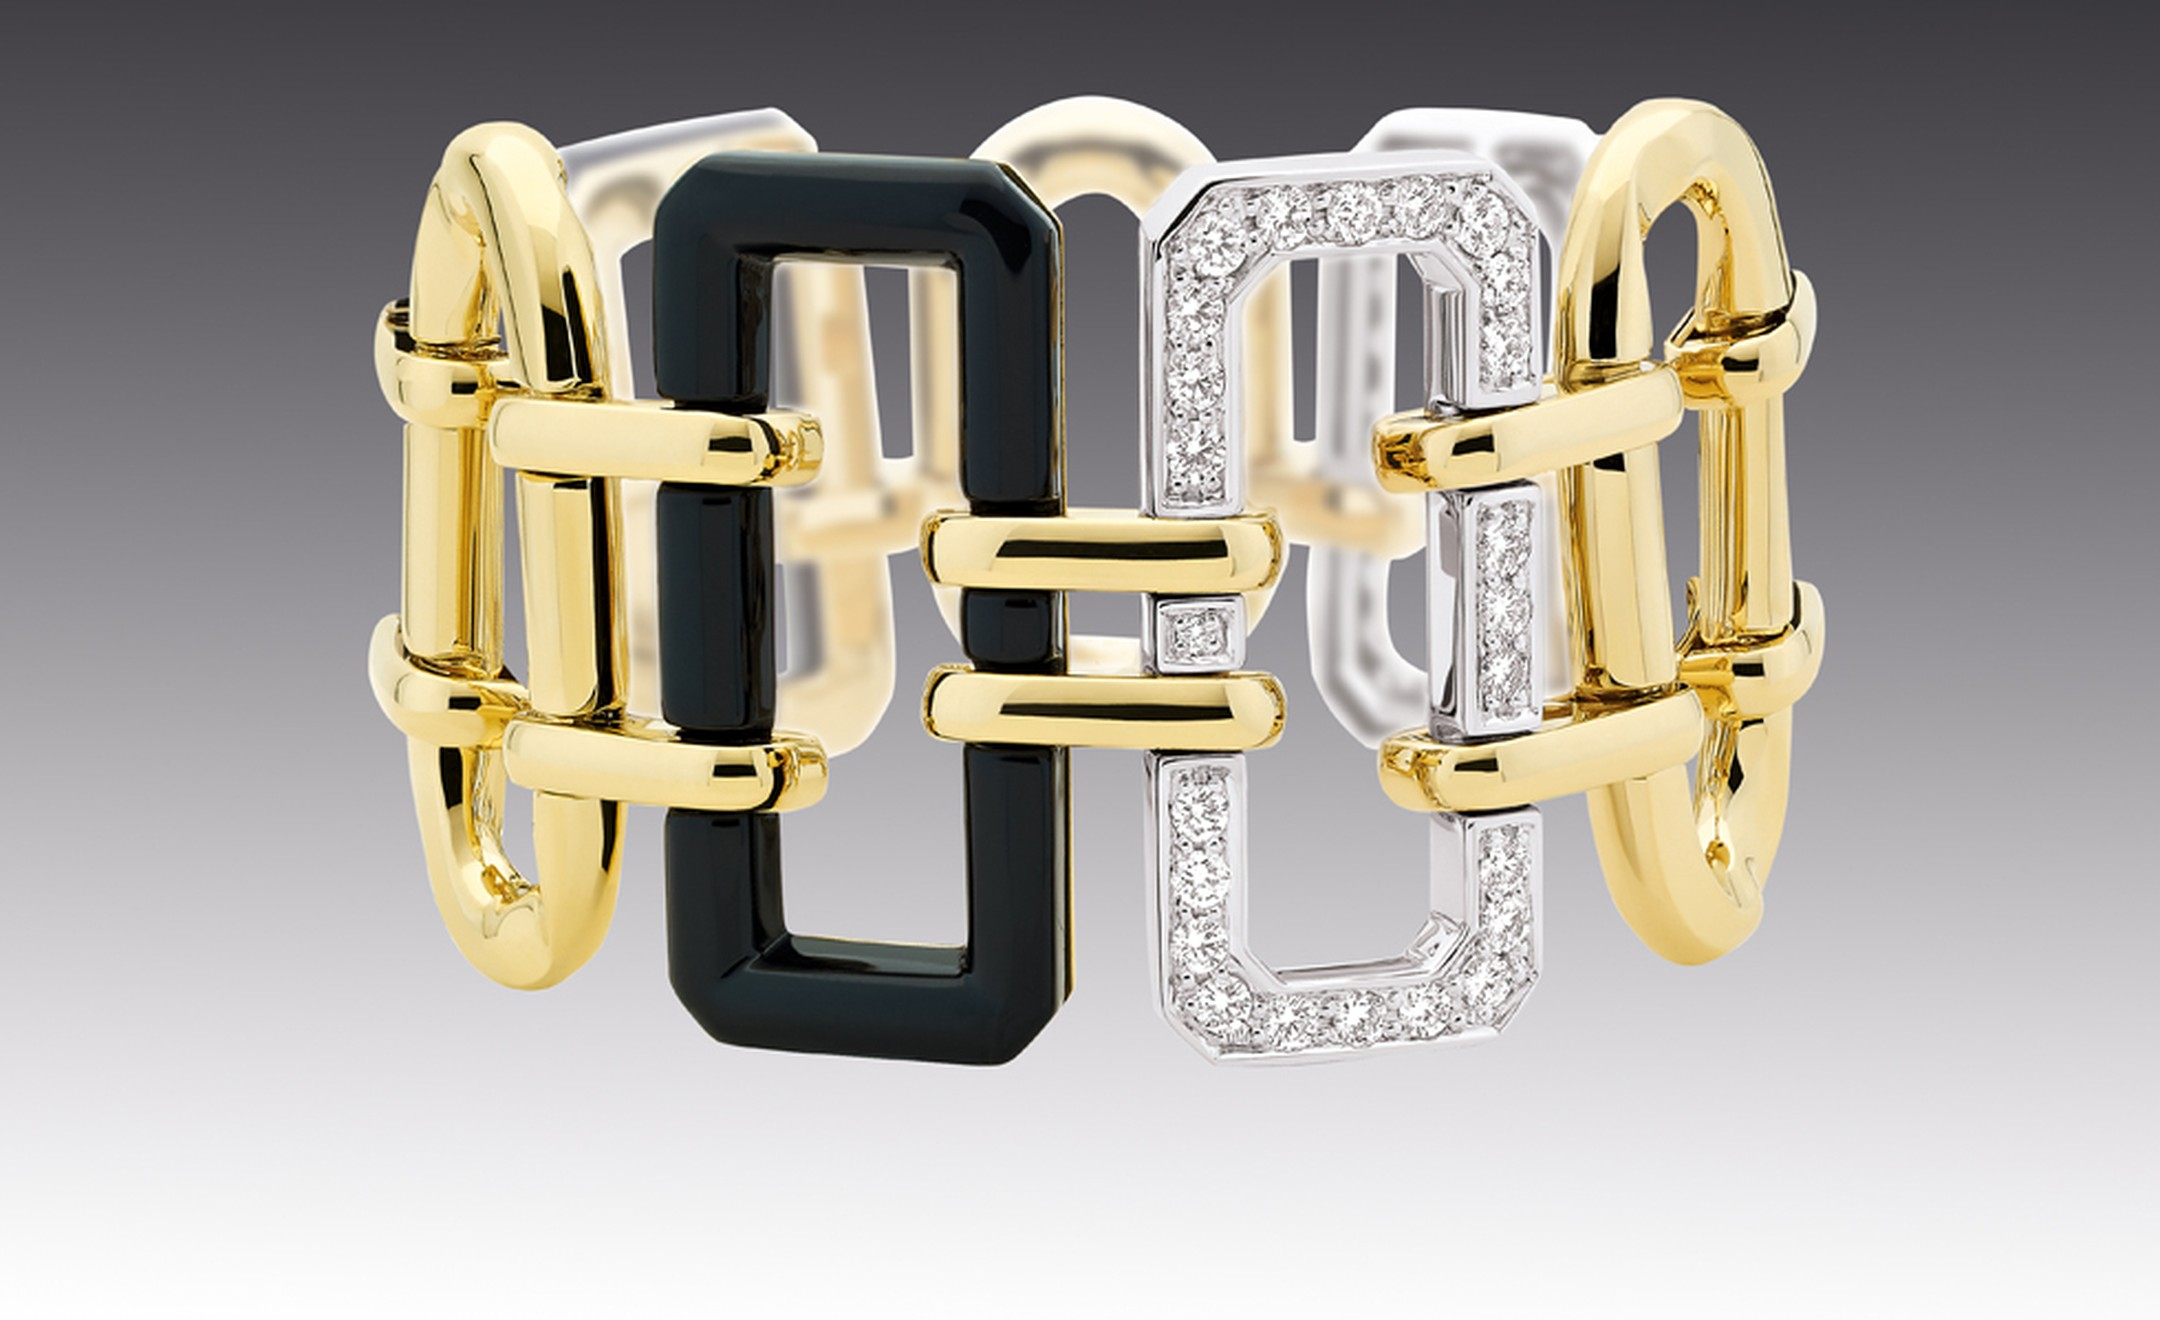 CHANEL, The Premiere cuff in 18kt white and yellow gold with onyx. £18,675